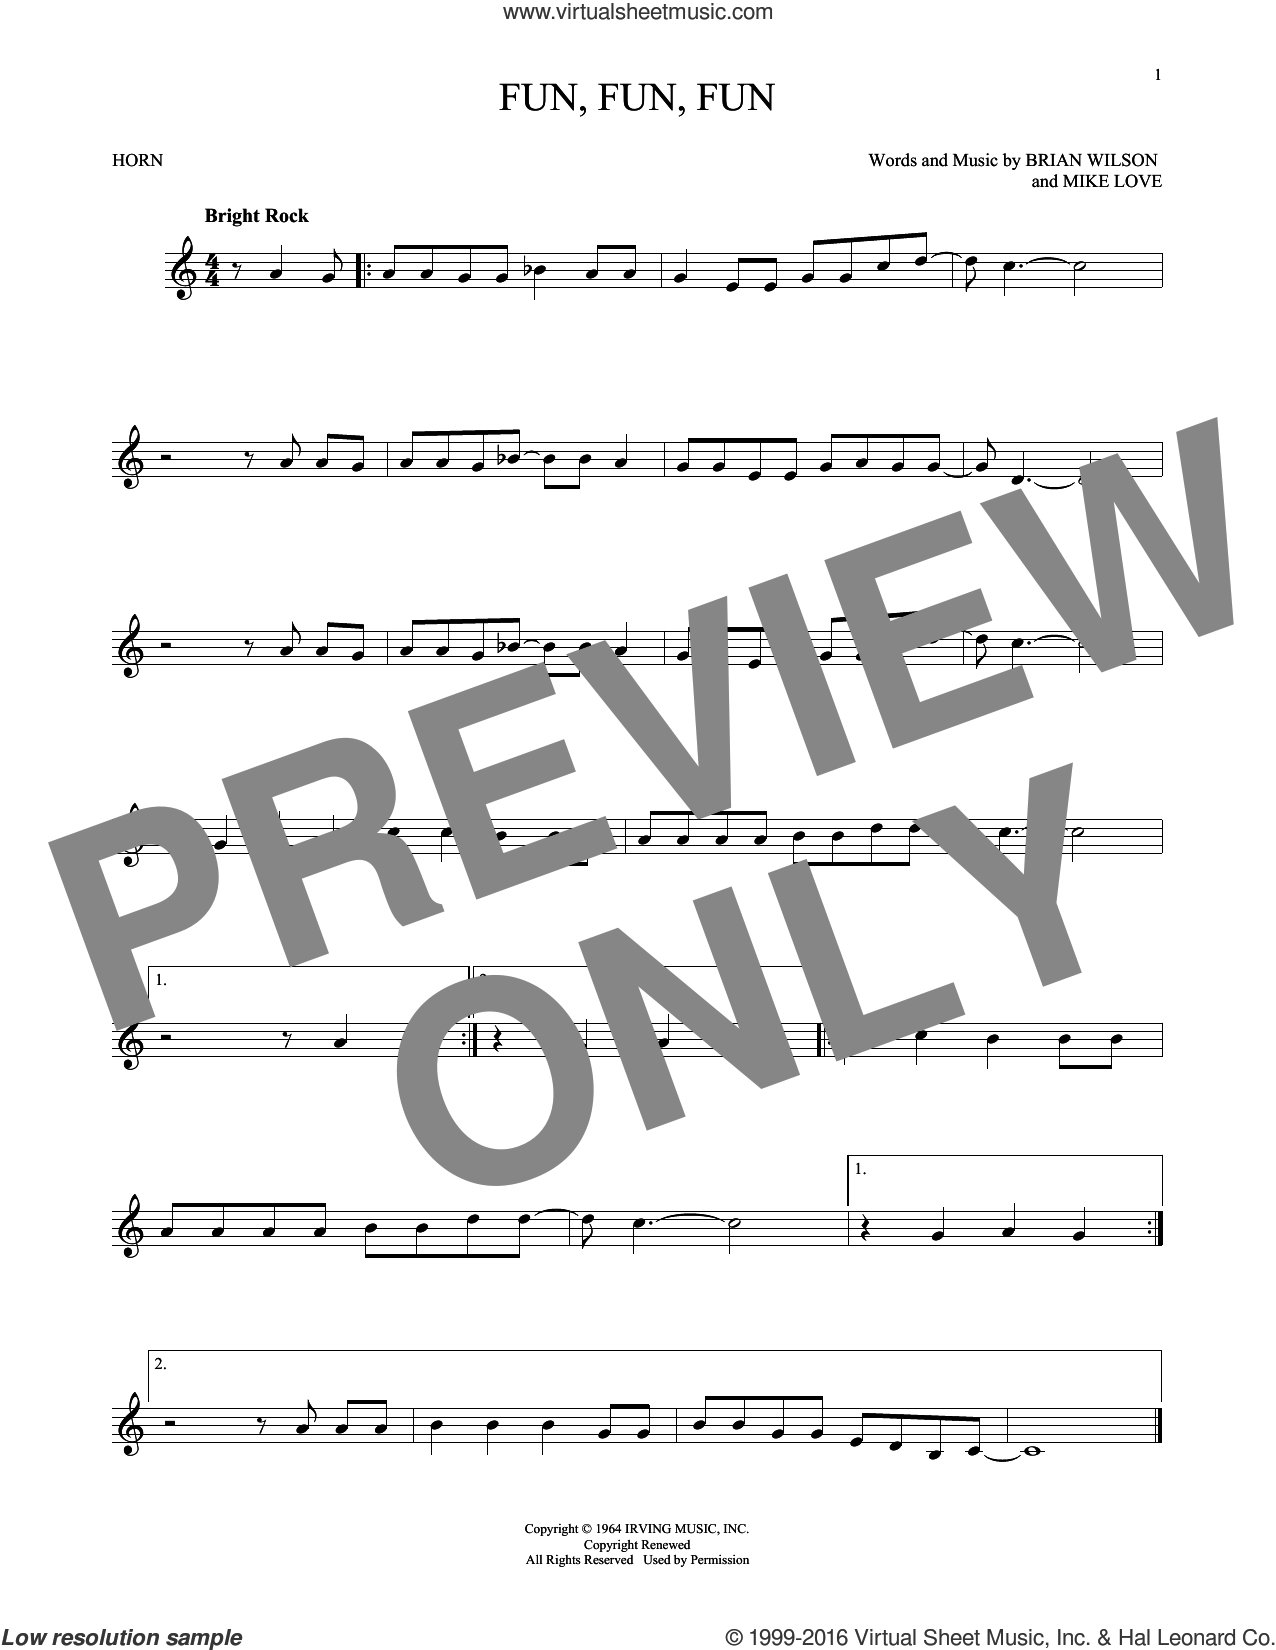 Fun, Fun, Fun sheet music for horn solo by The Beach Boys, Brian Wilson and Mike Love, intermediate skill level